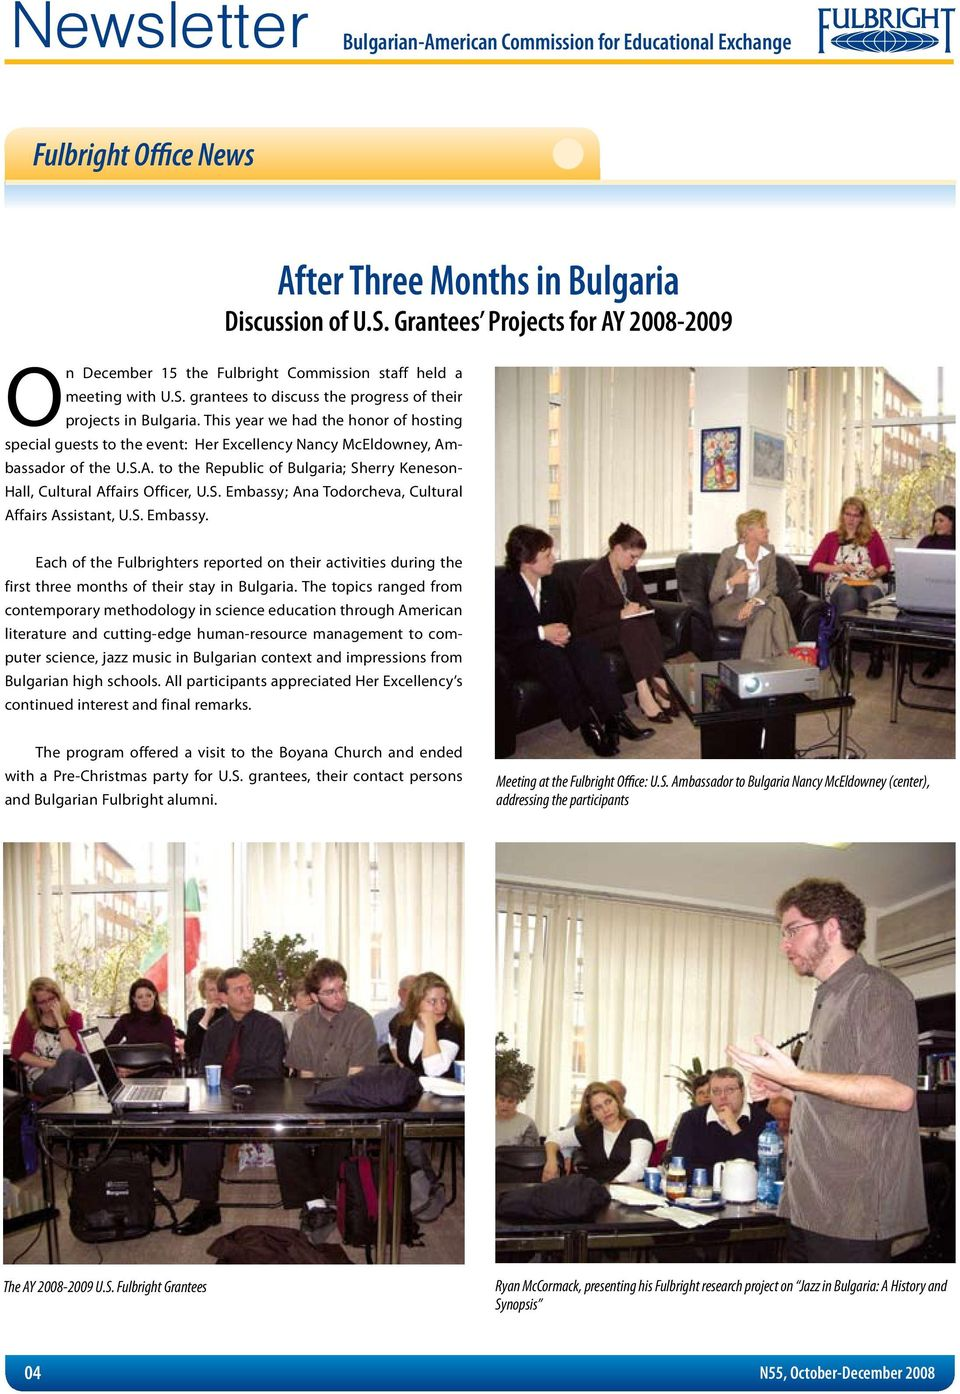 S. Embassy; Ana Todorcheva, Cultural Affairs Assistant, U.S. Embassy. Each of the Fulbrighters reported on their activities during the first three months of their stay in Bulgaria.